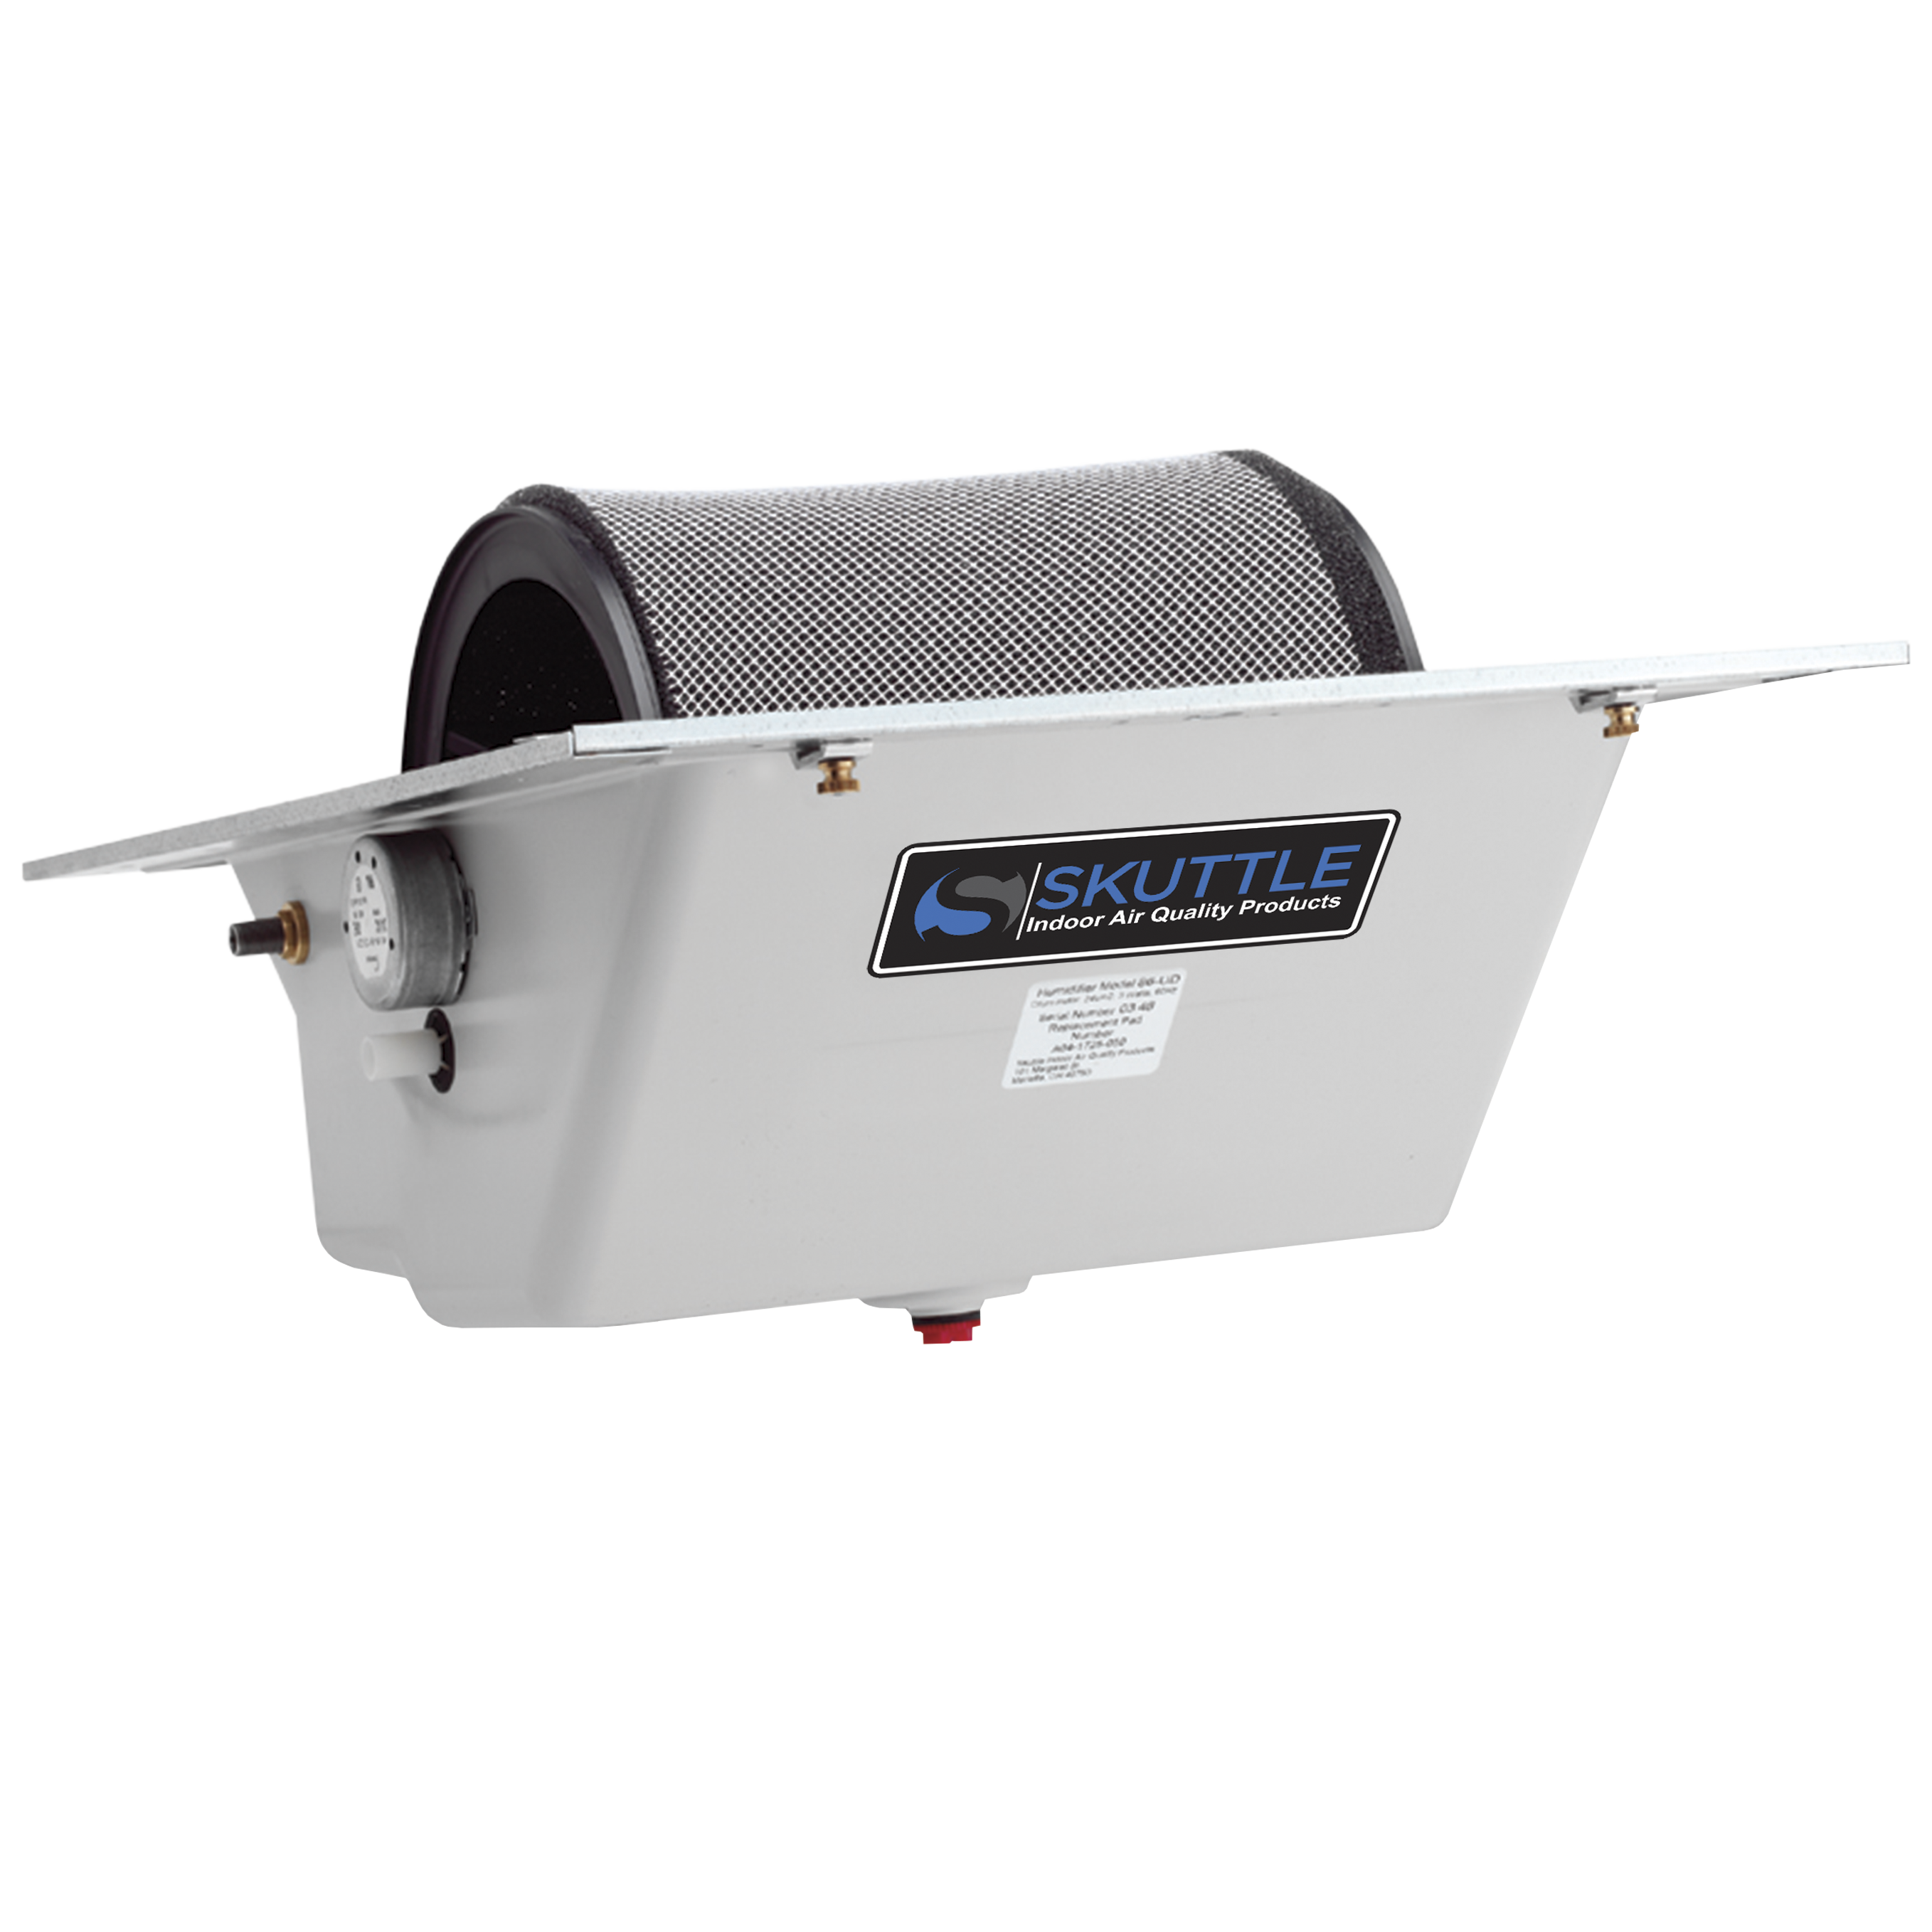 Under Duct Humidifiers | Skuttle